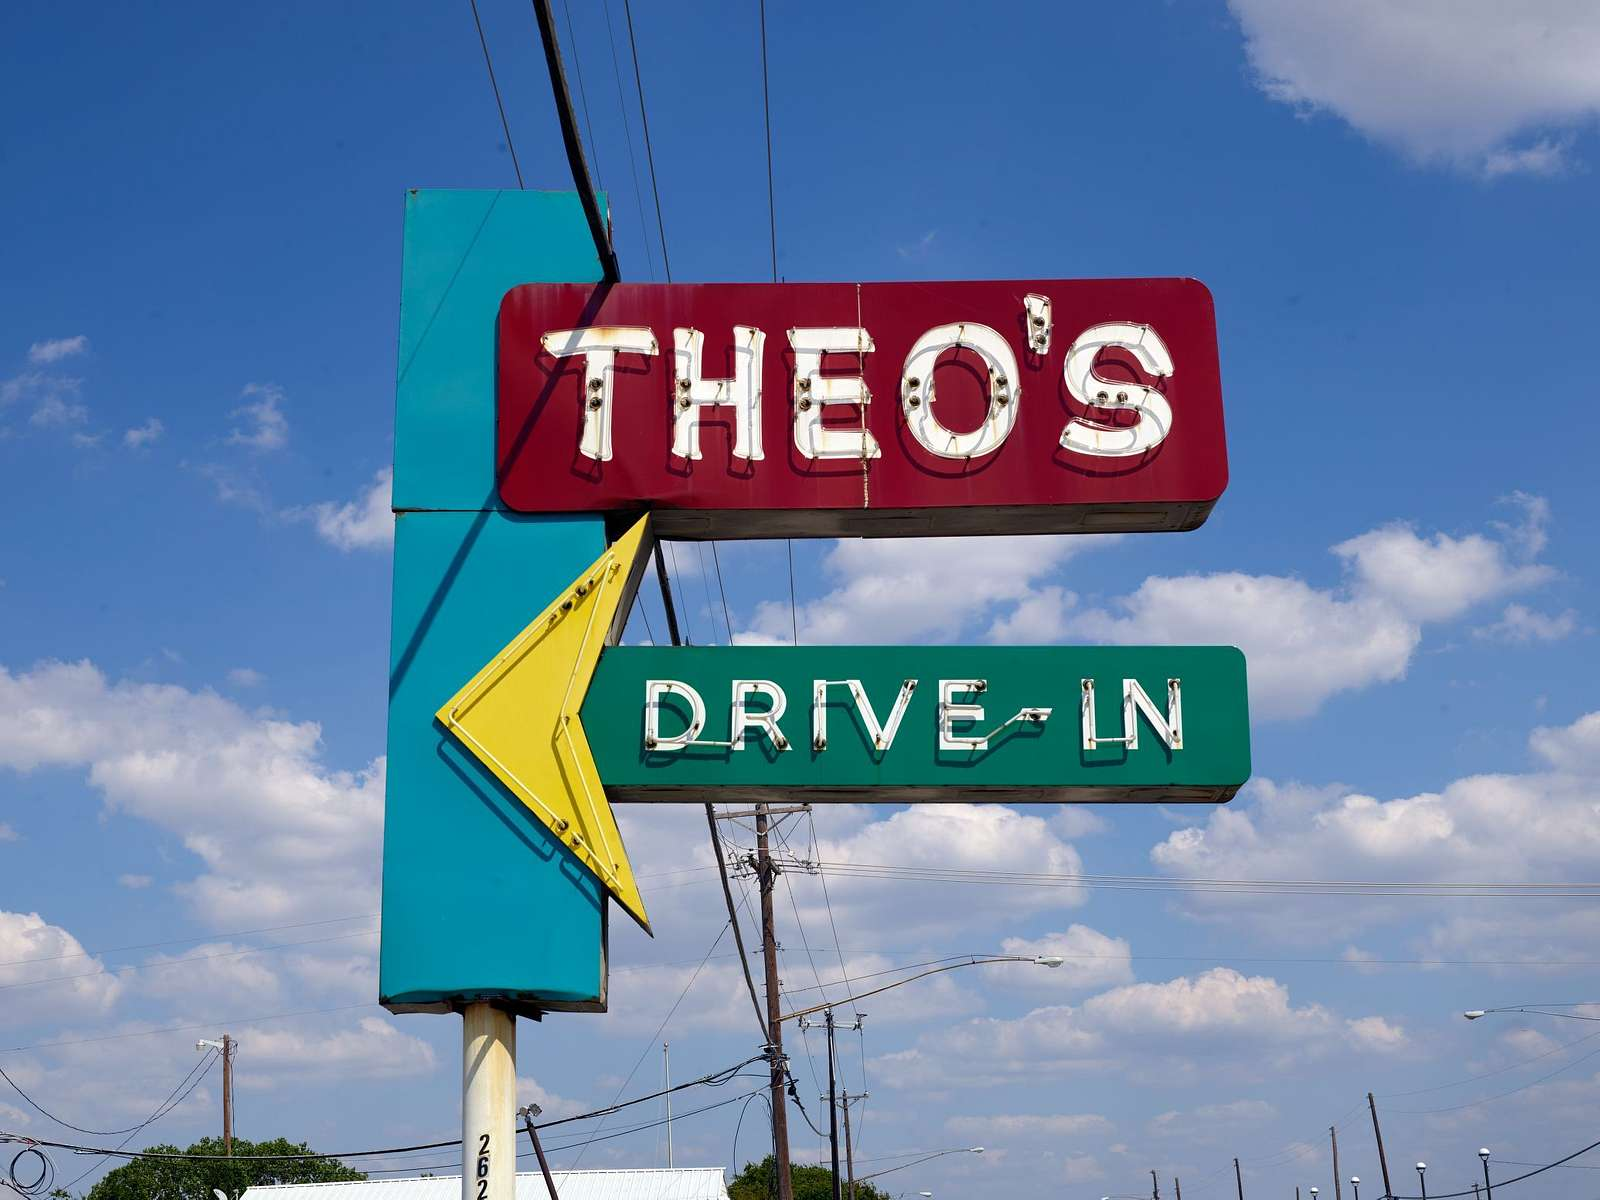 Neon sign for Theo's drive-in restaurant in Grand Prairie, Texas, along Texas Route 180, once the main road between Fort Worth and Dallas. The restaurant was founded by Greek immigrant Theo Chokas in 1956